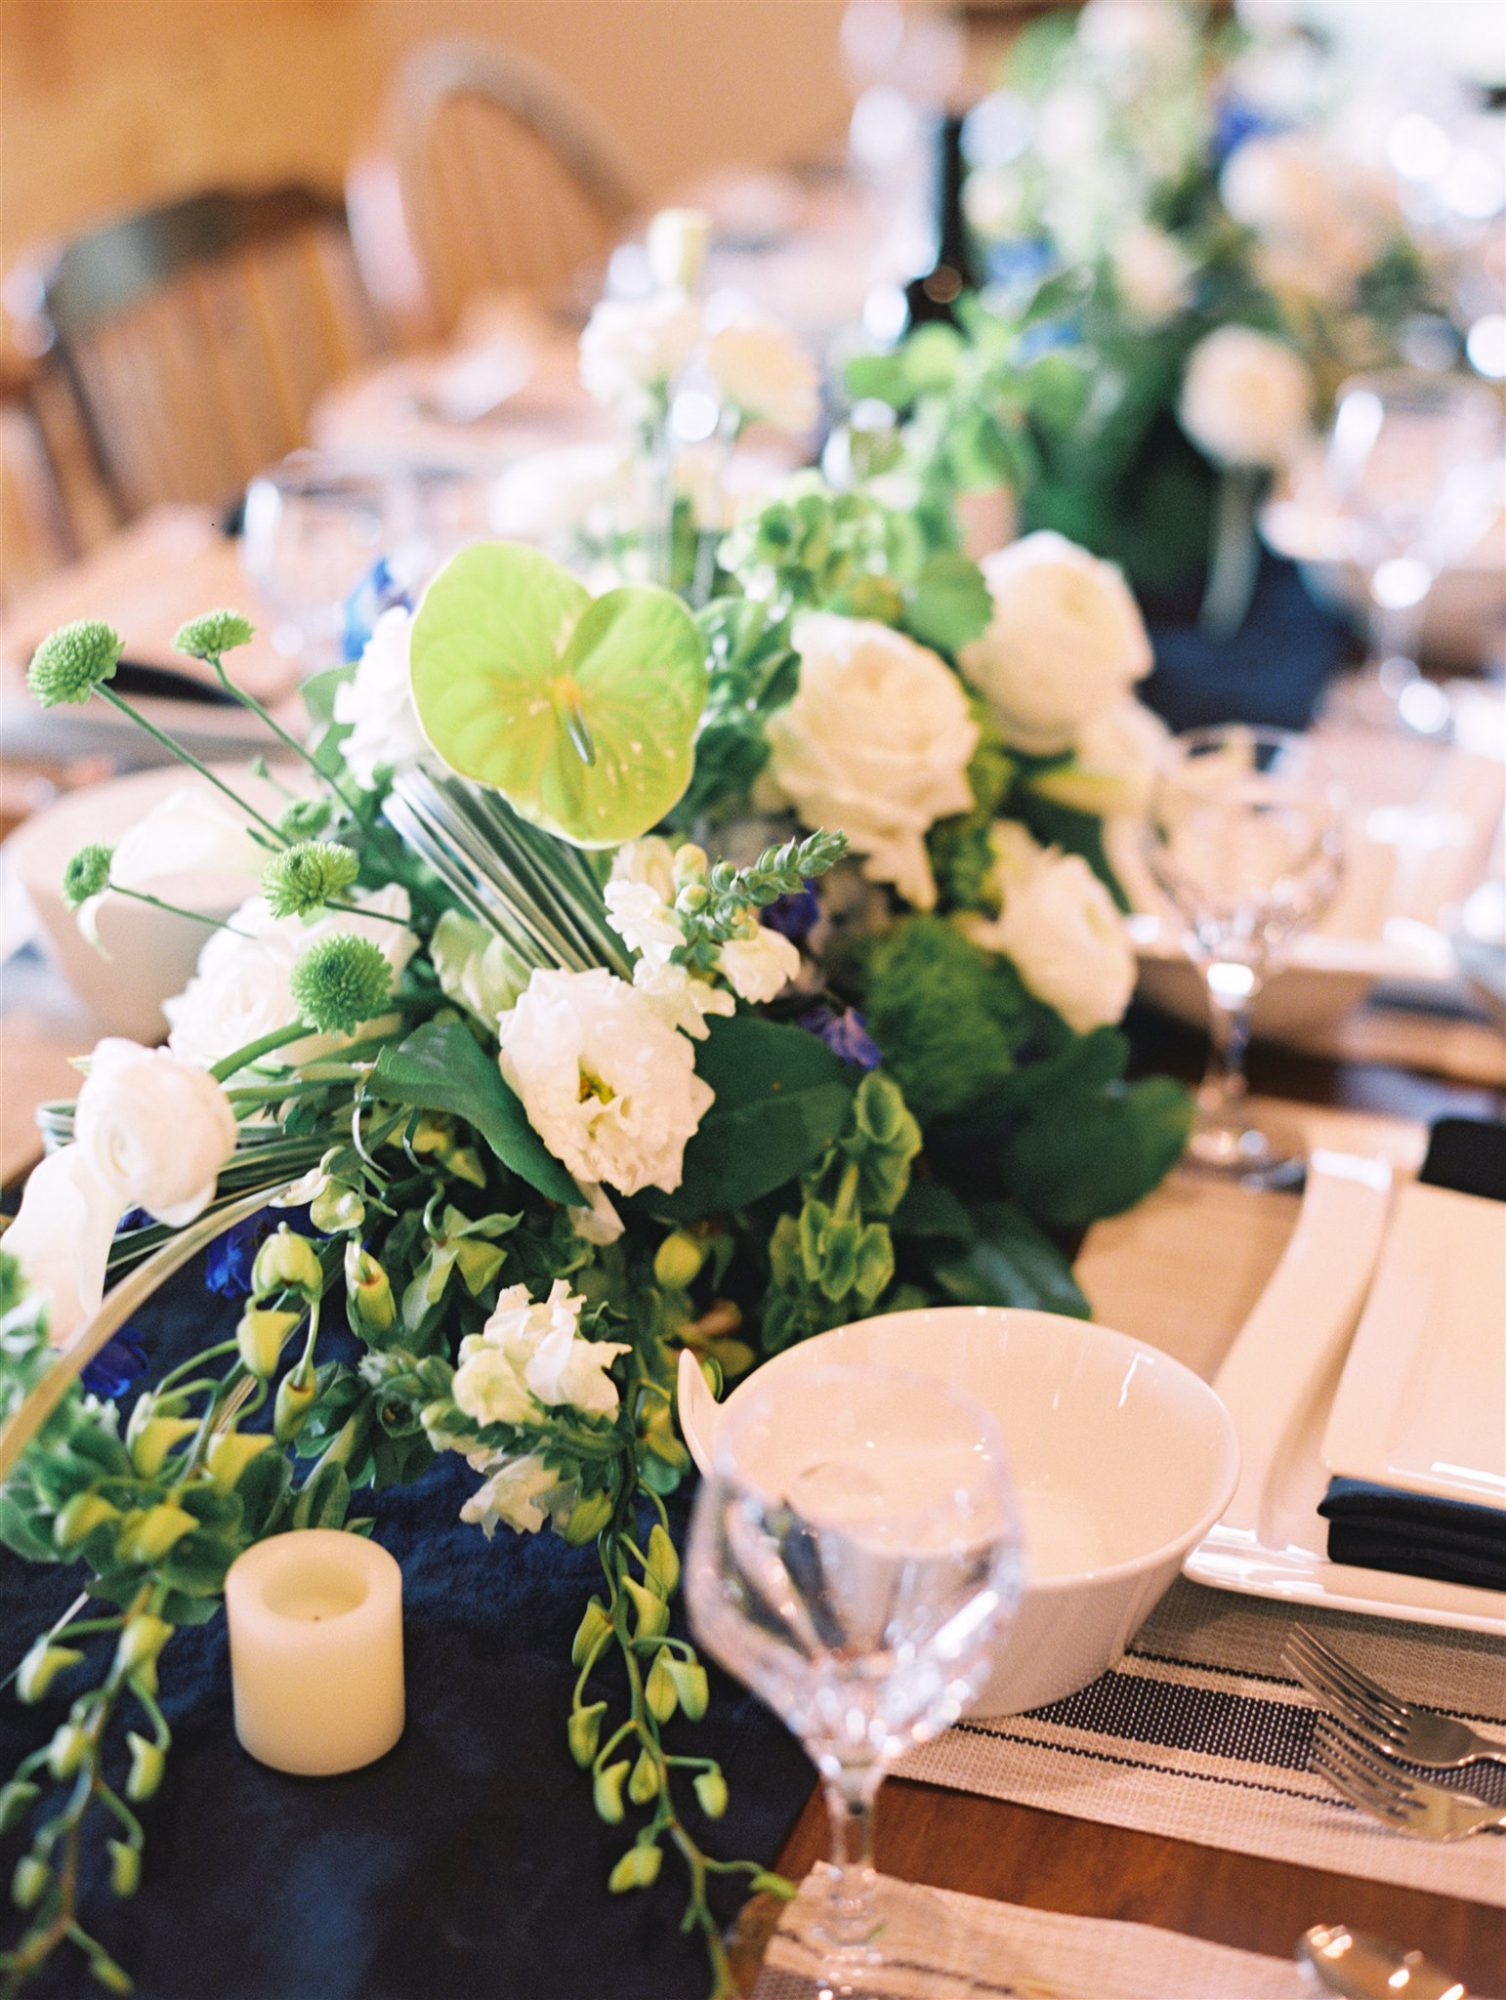 chain of flower arrangements in greens and blues lining center of reception table